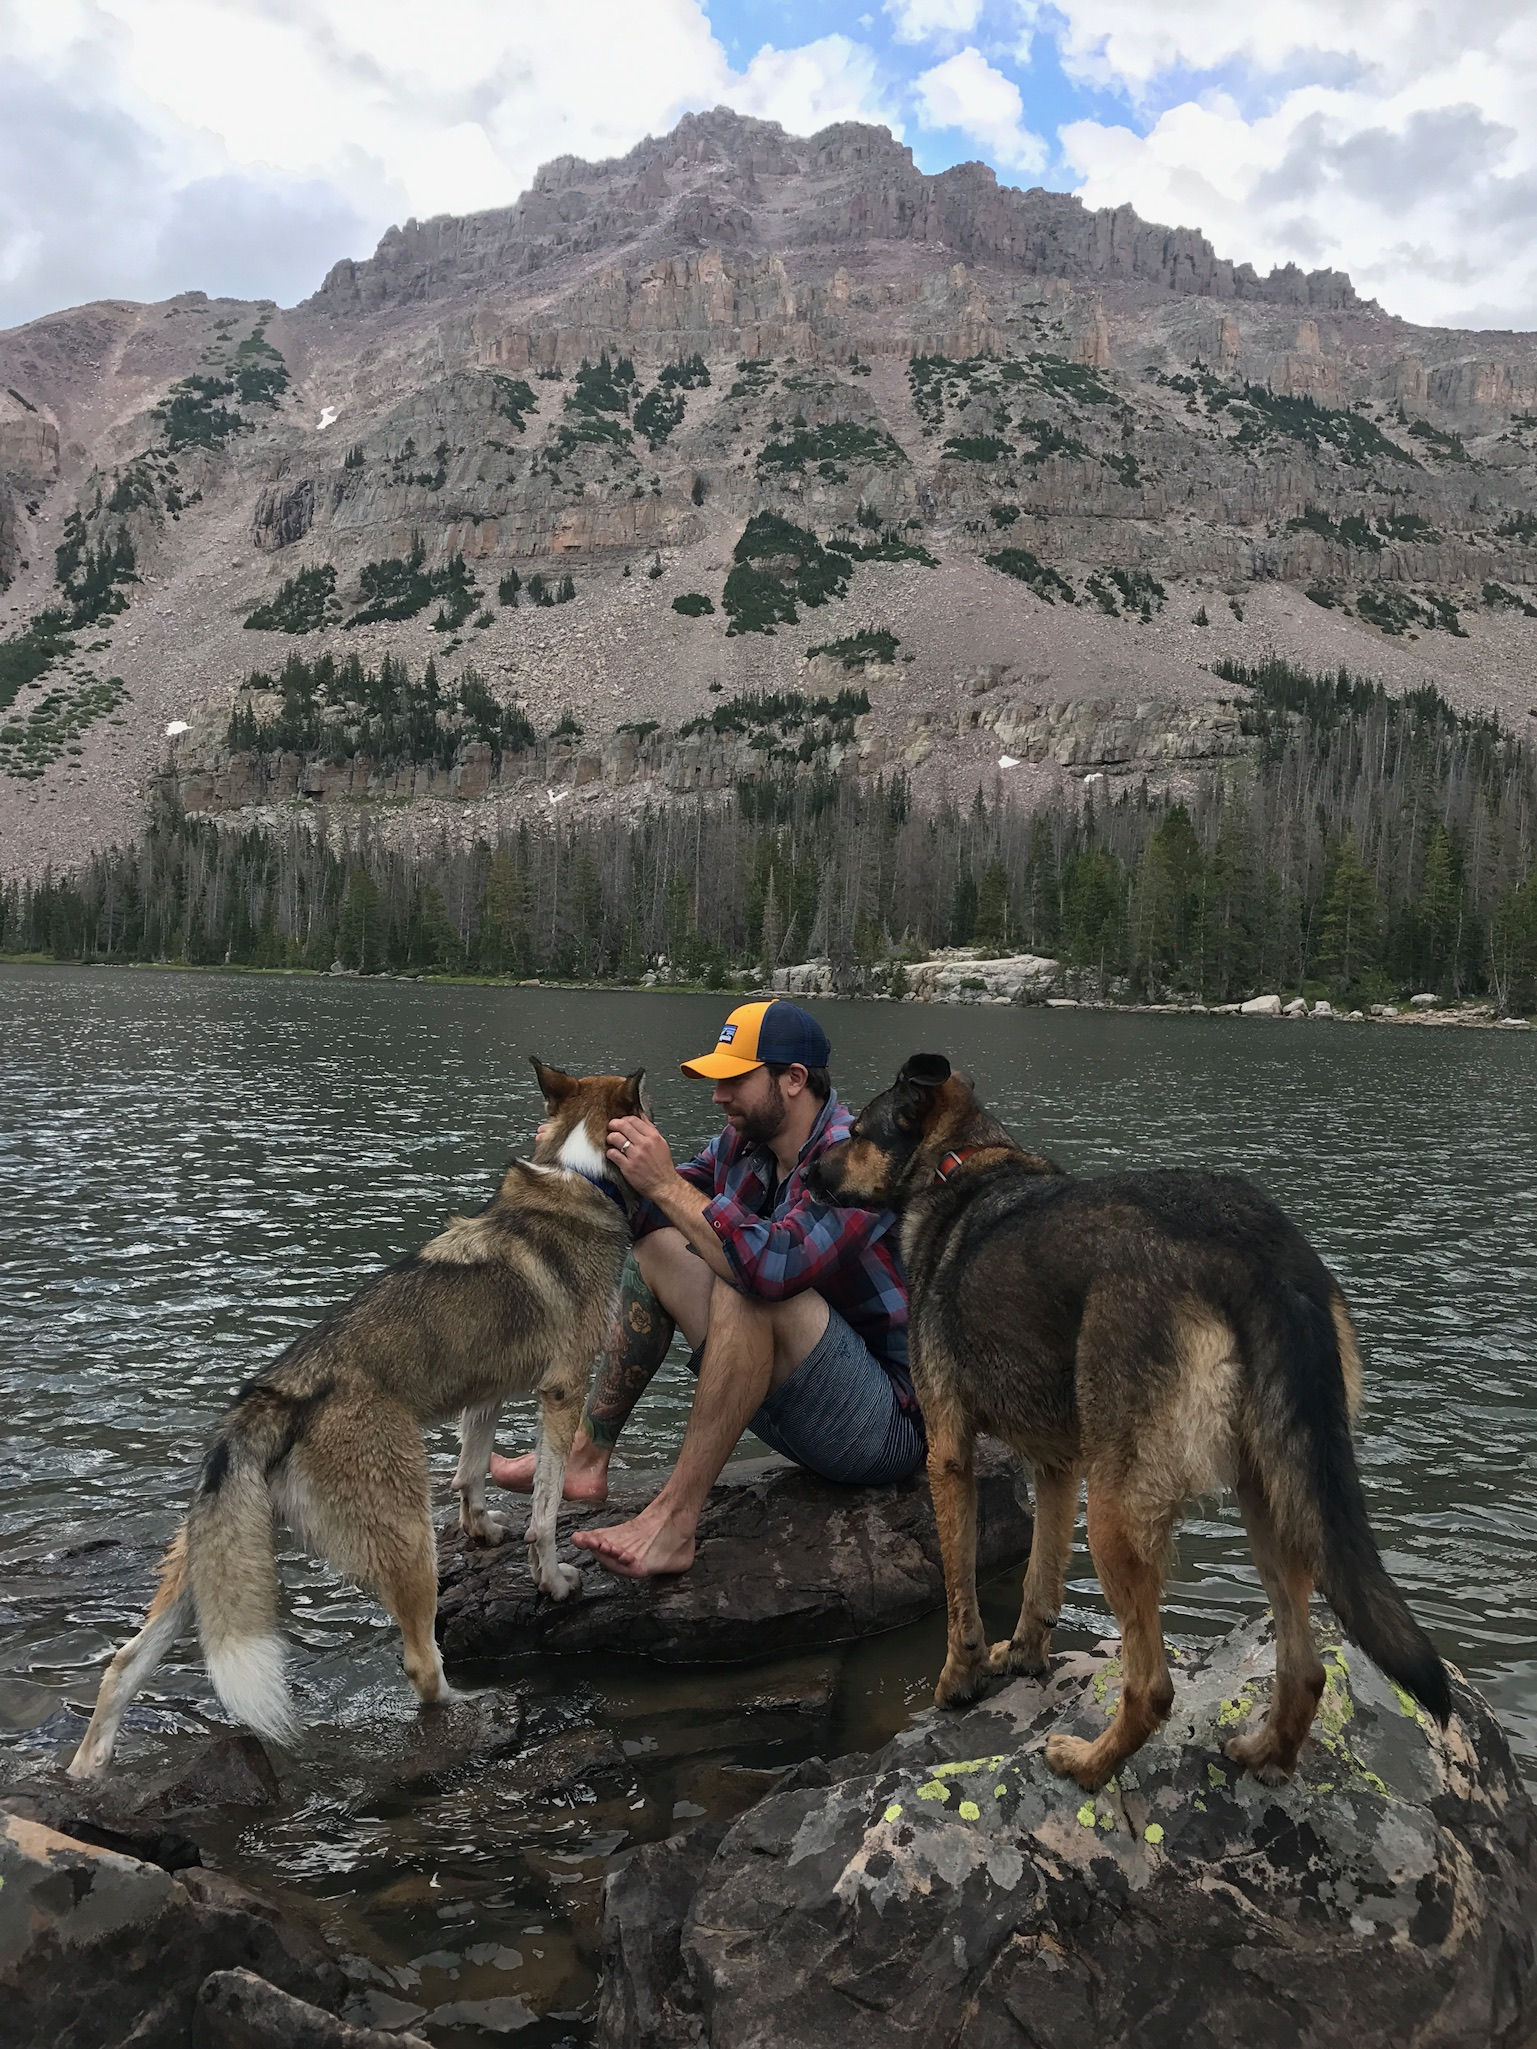 Trout seemed abundant in the lake, but even if we had poles our pups constant need to splash around would likely leave us hungry.